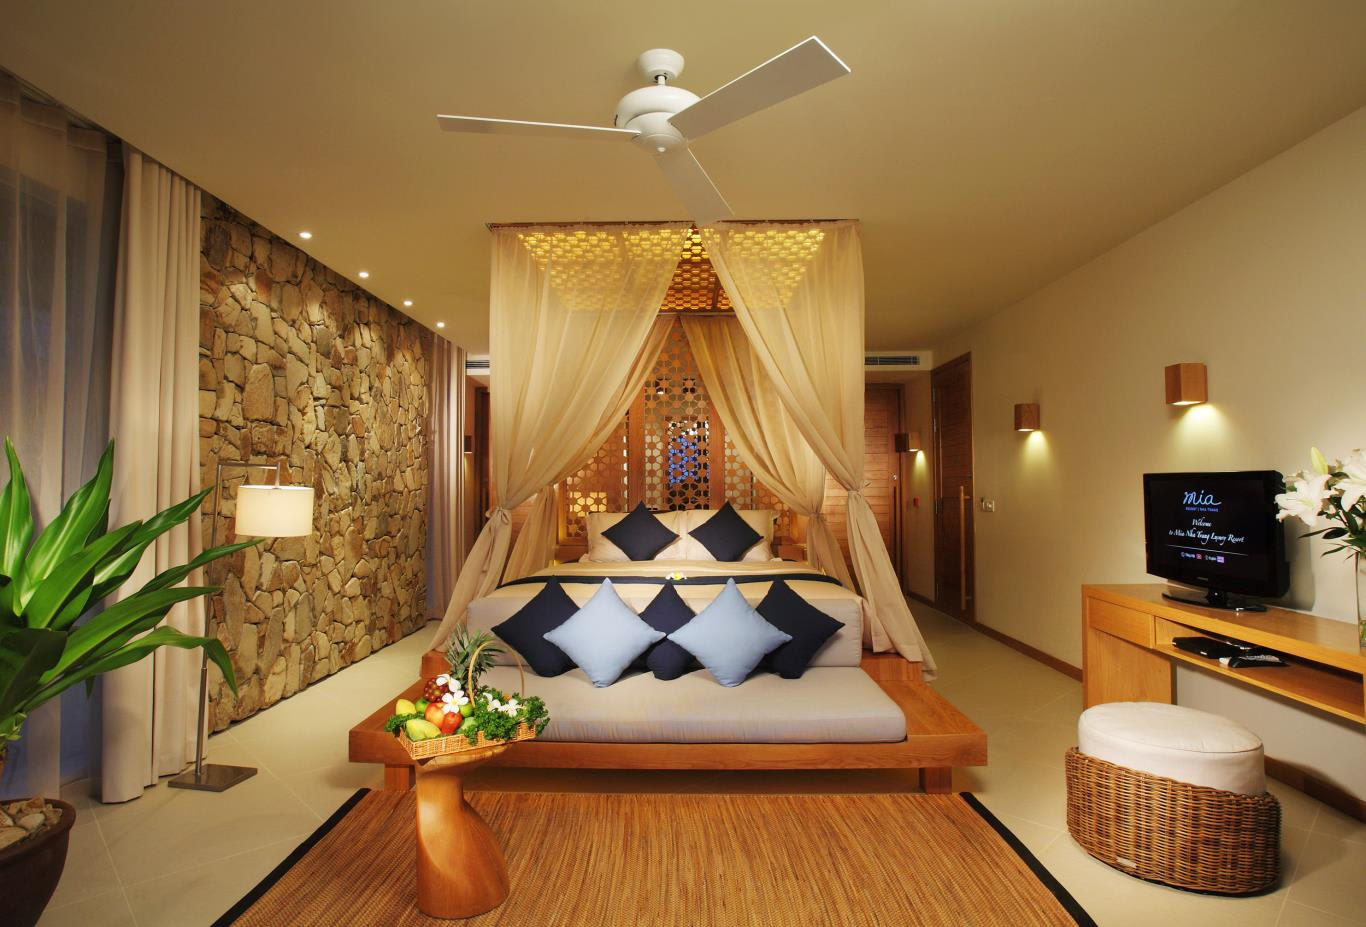 Garden, Cliff, Beachfront Villa and Mia suite